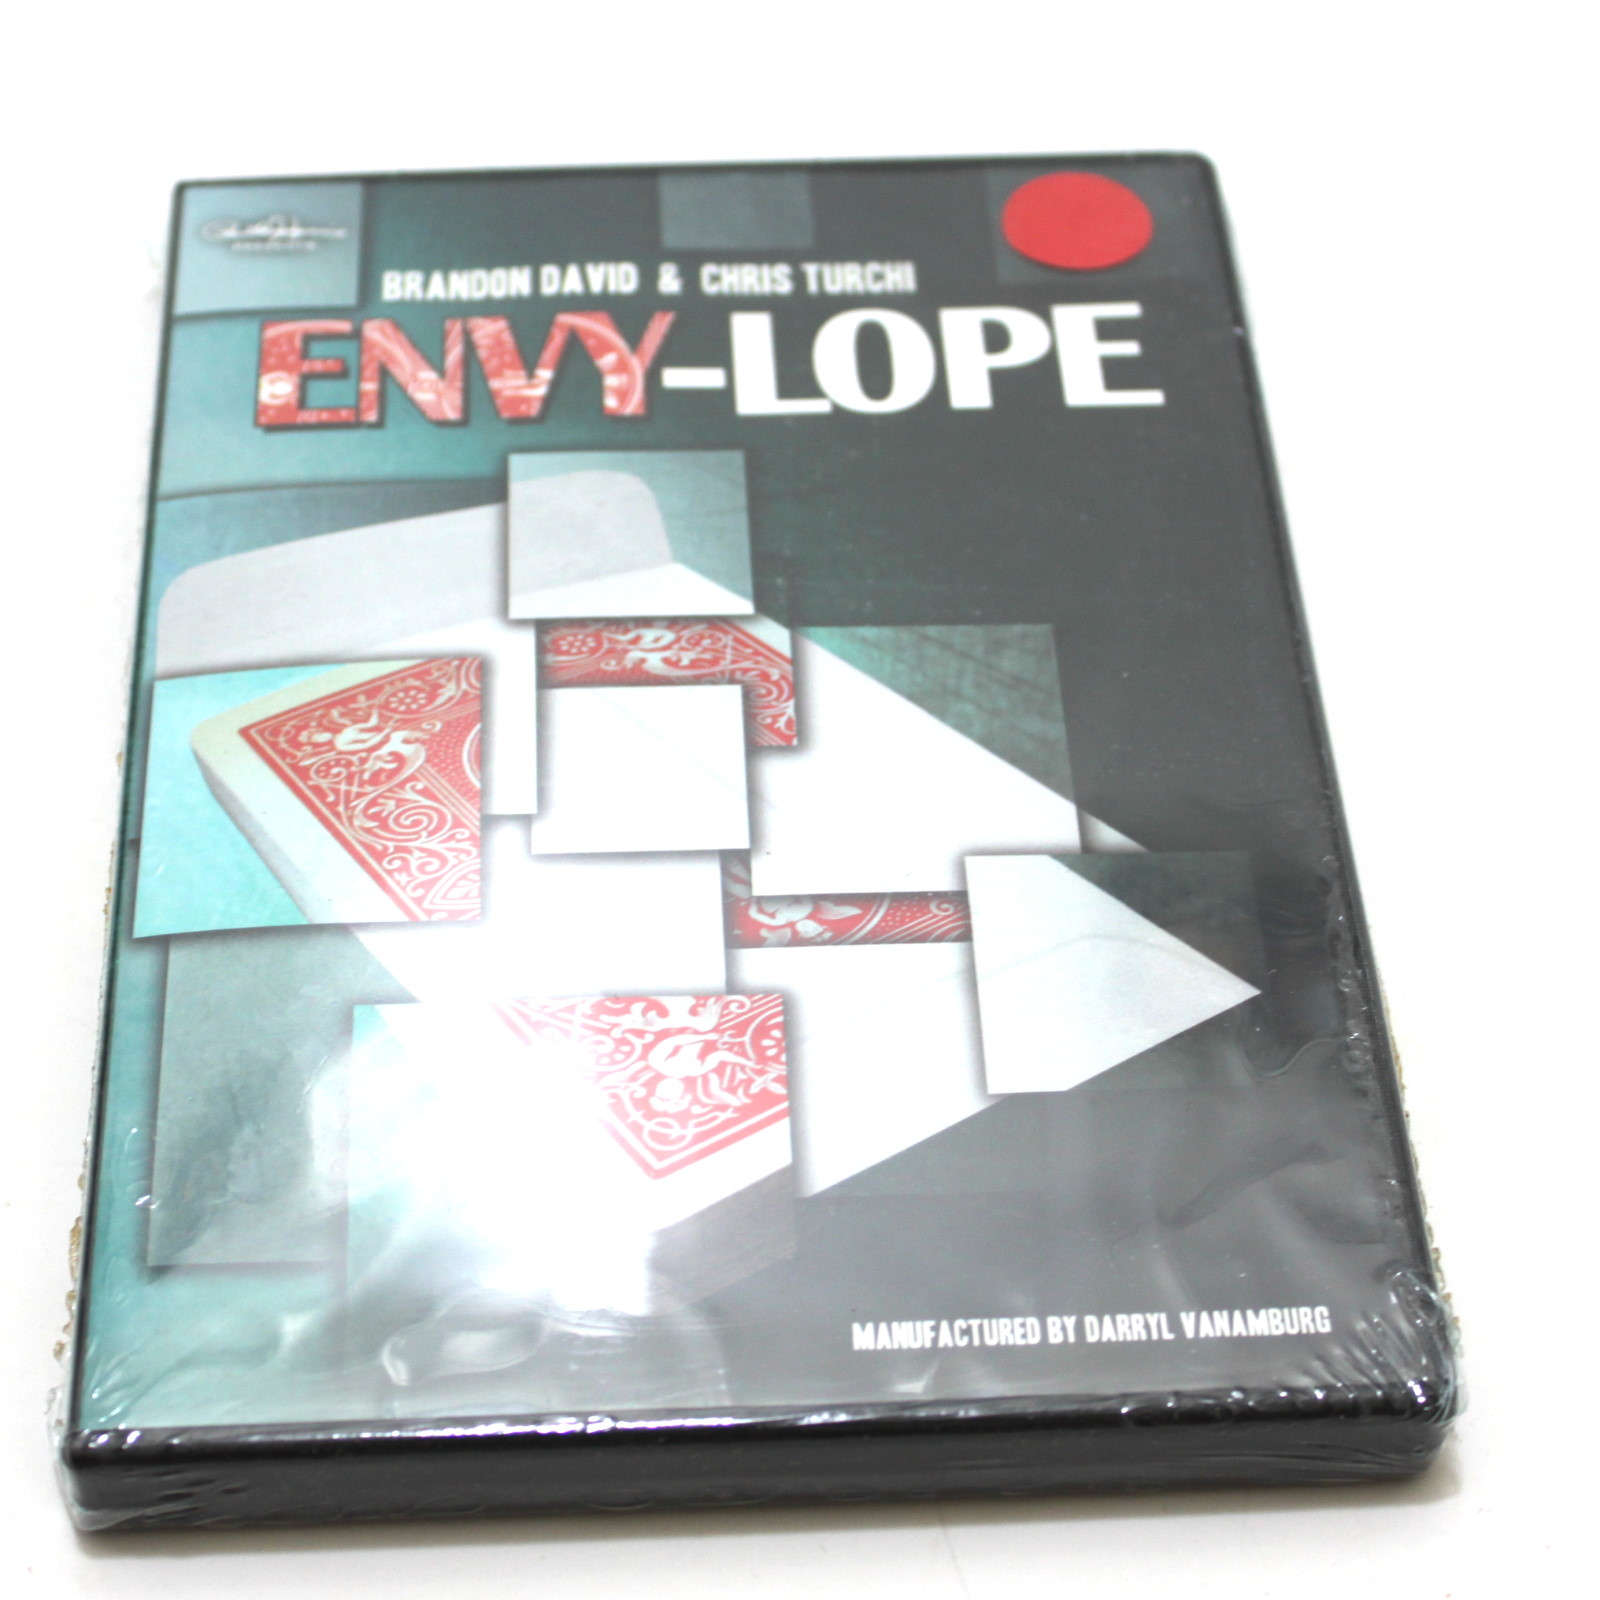 Envy-Lope by Brandon David, Chris Turchi